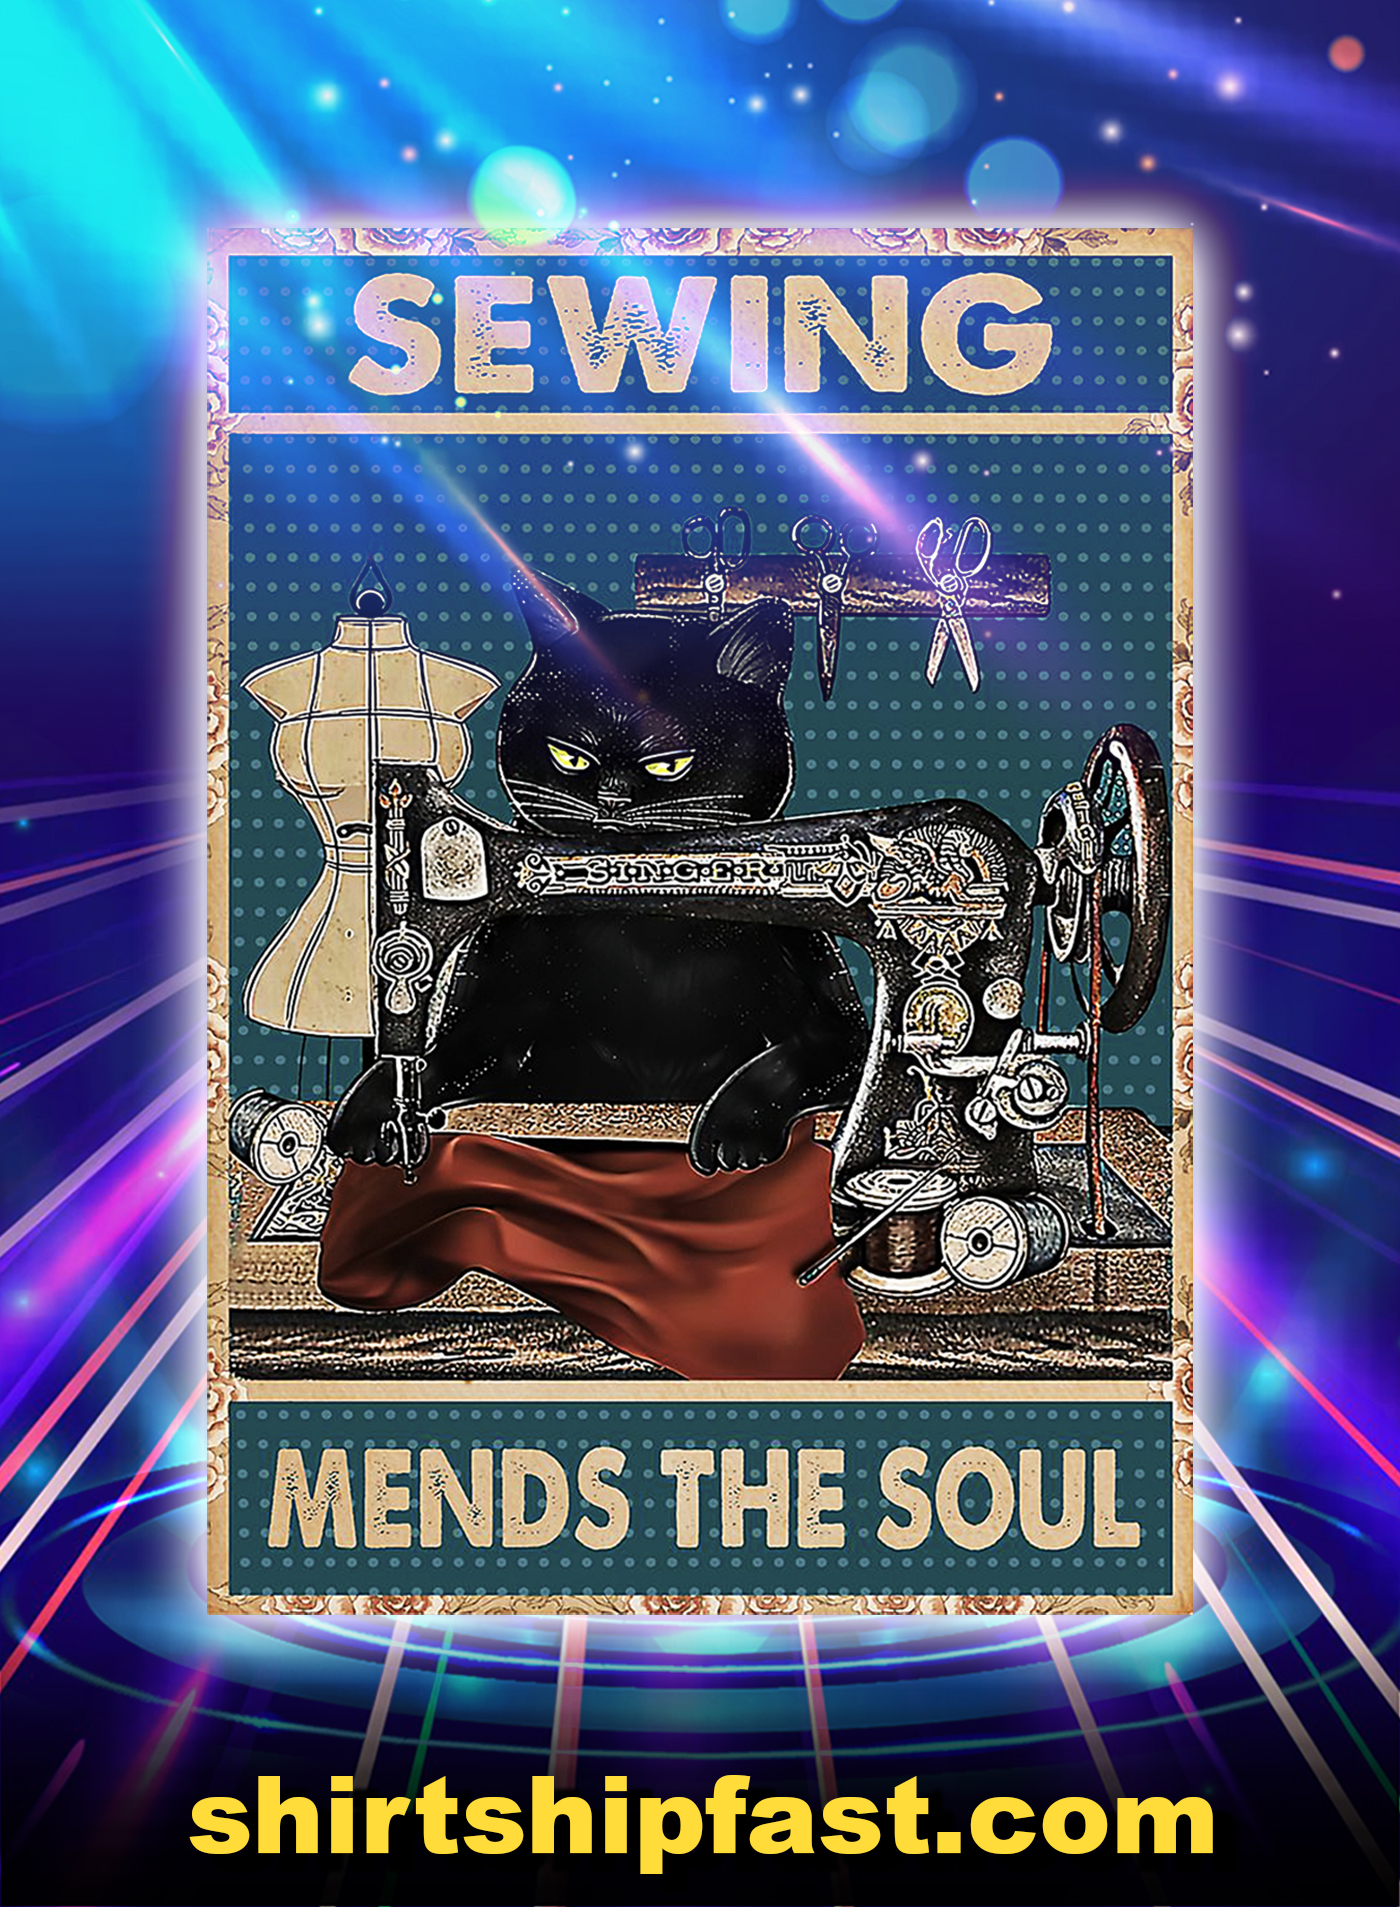 Cat sewing mends the soul poster - A1